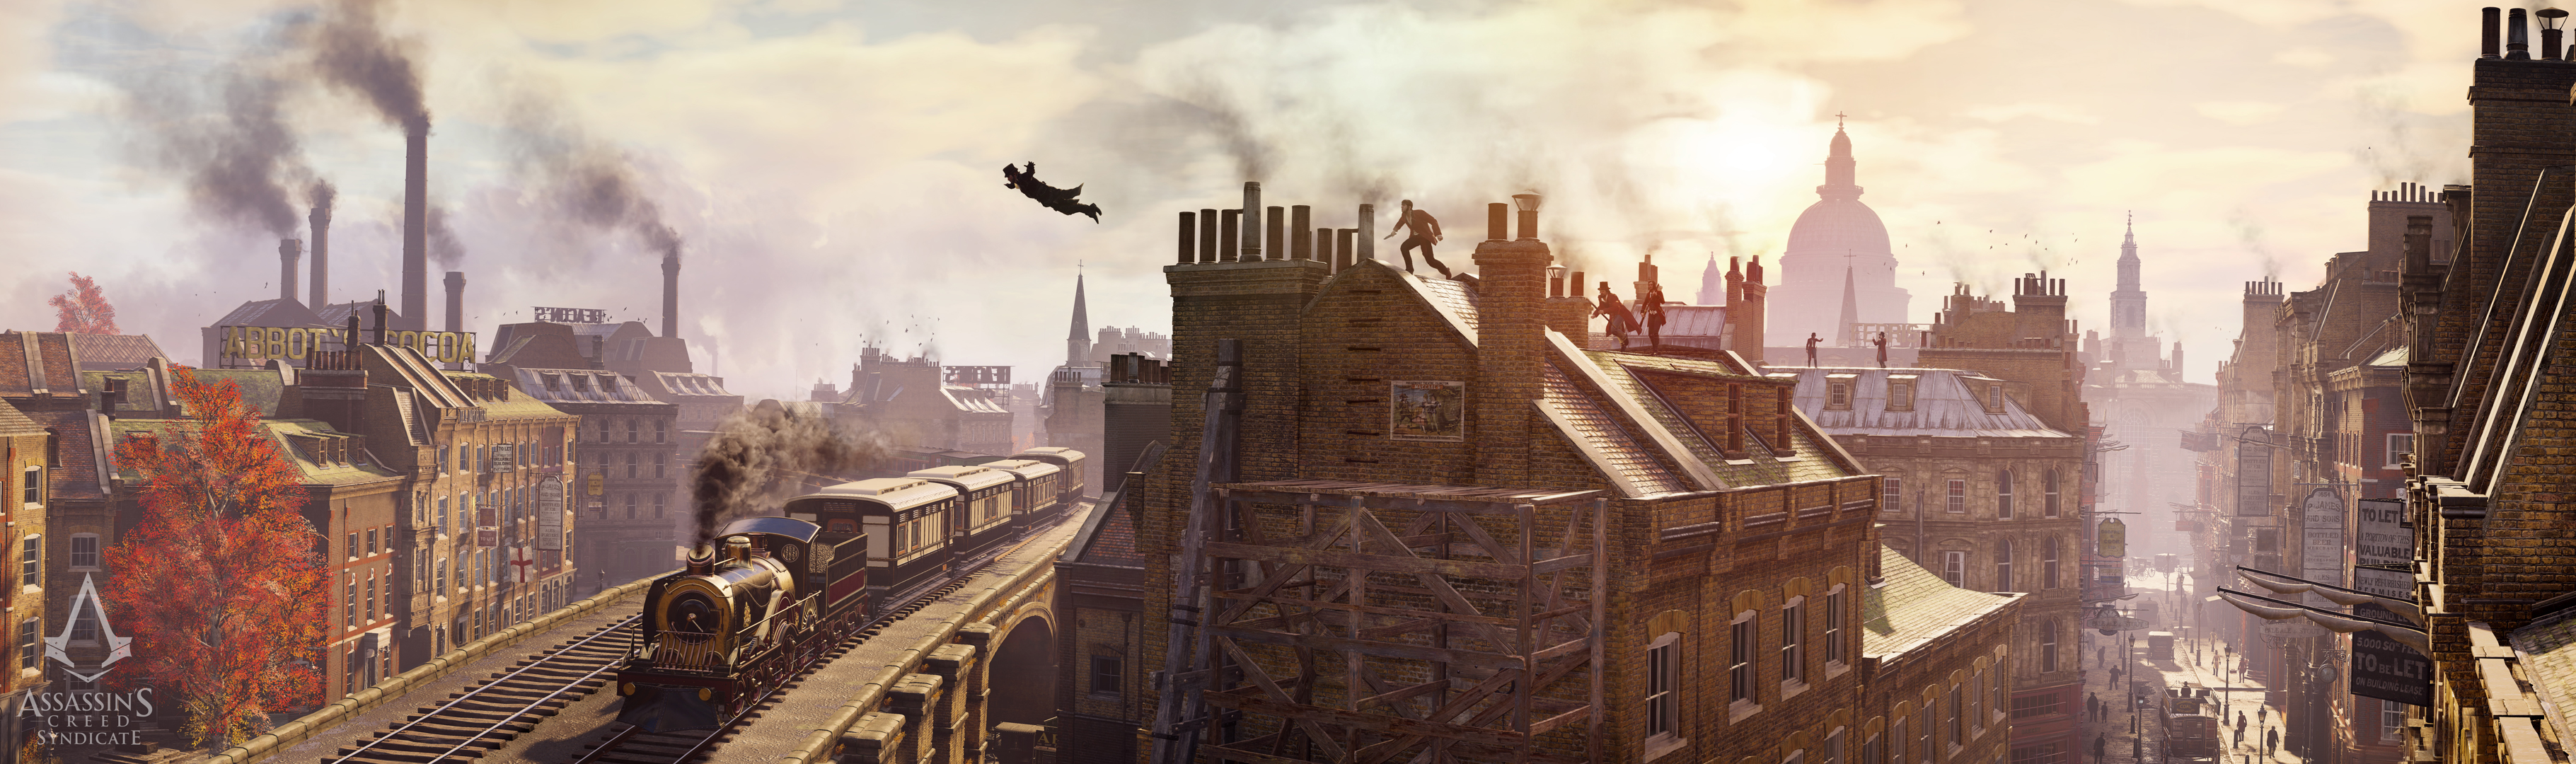 Assassin's Creed Syndicate is everything that's great and ...